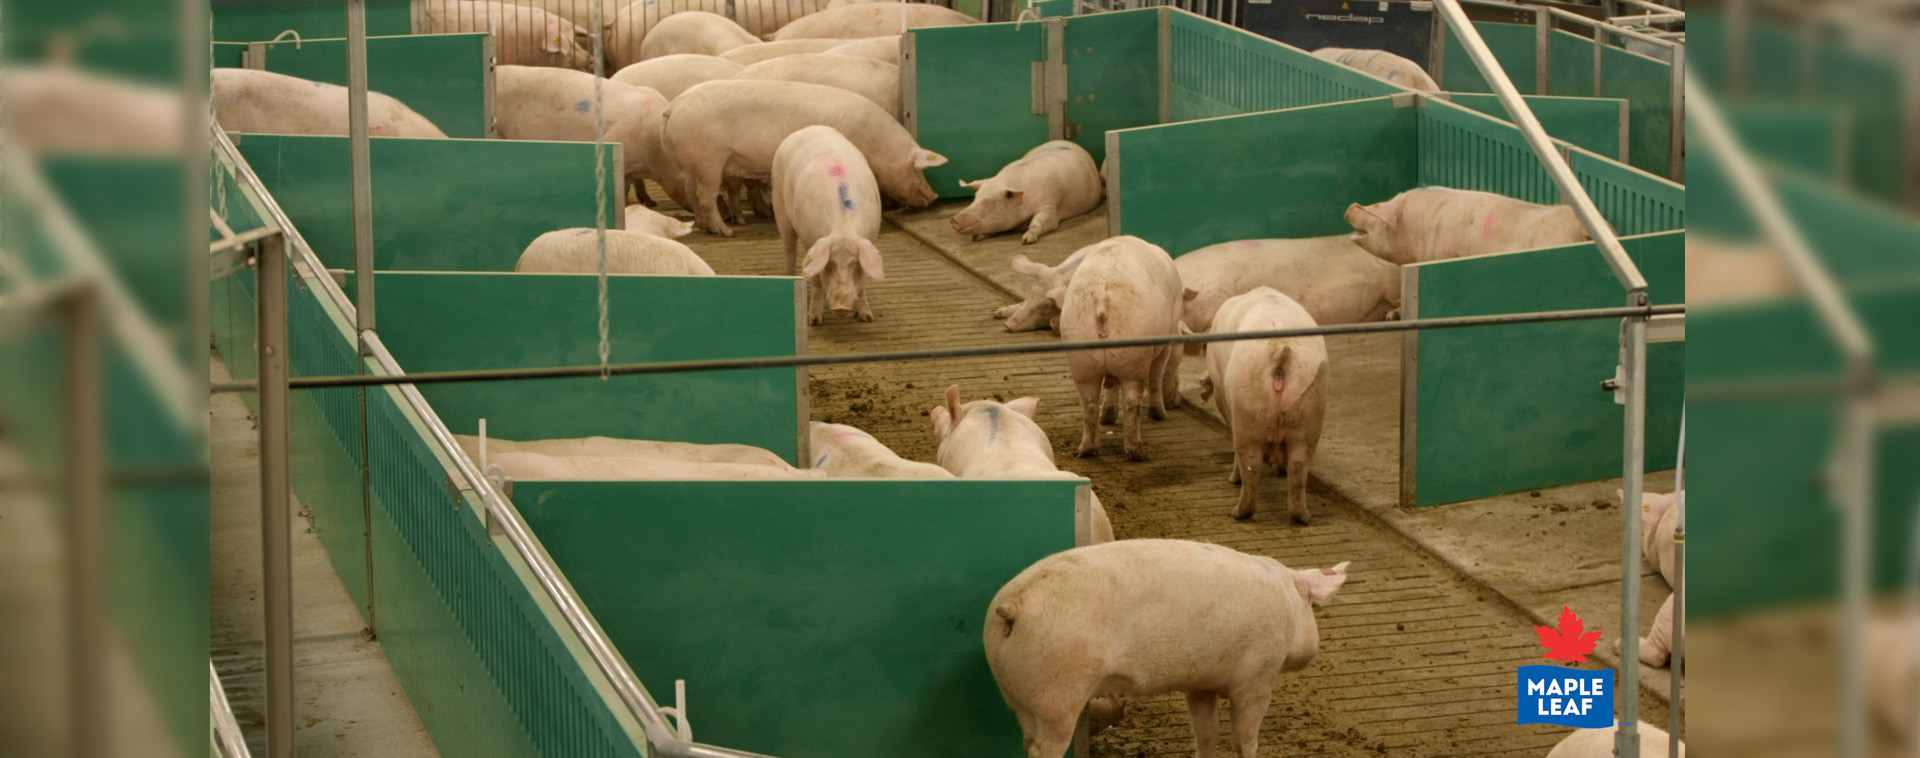 Sows in their building and pens.